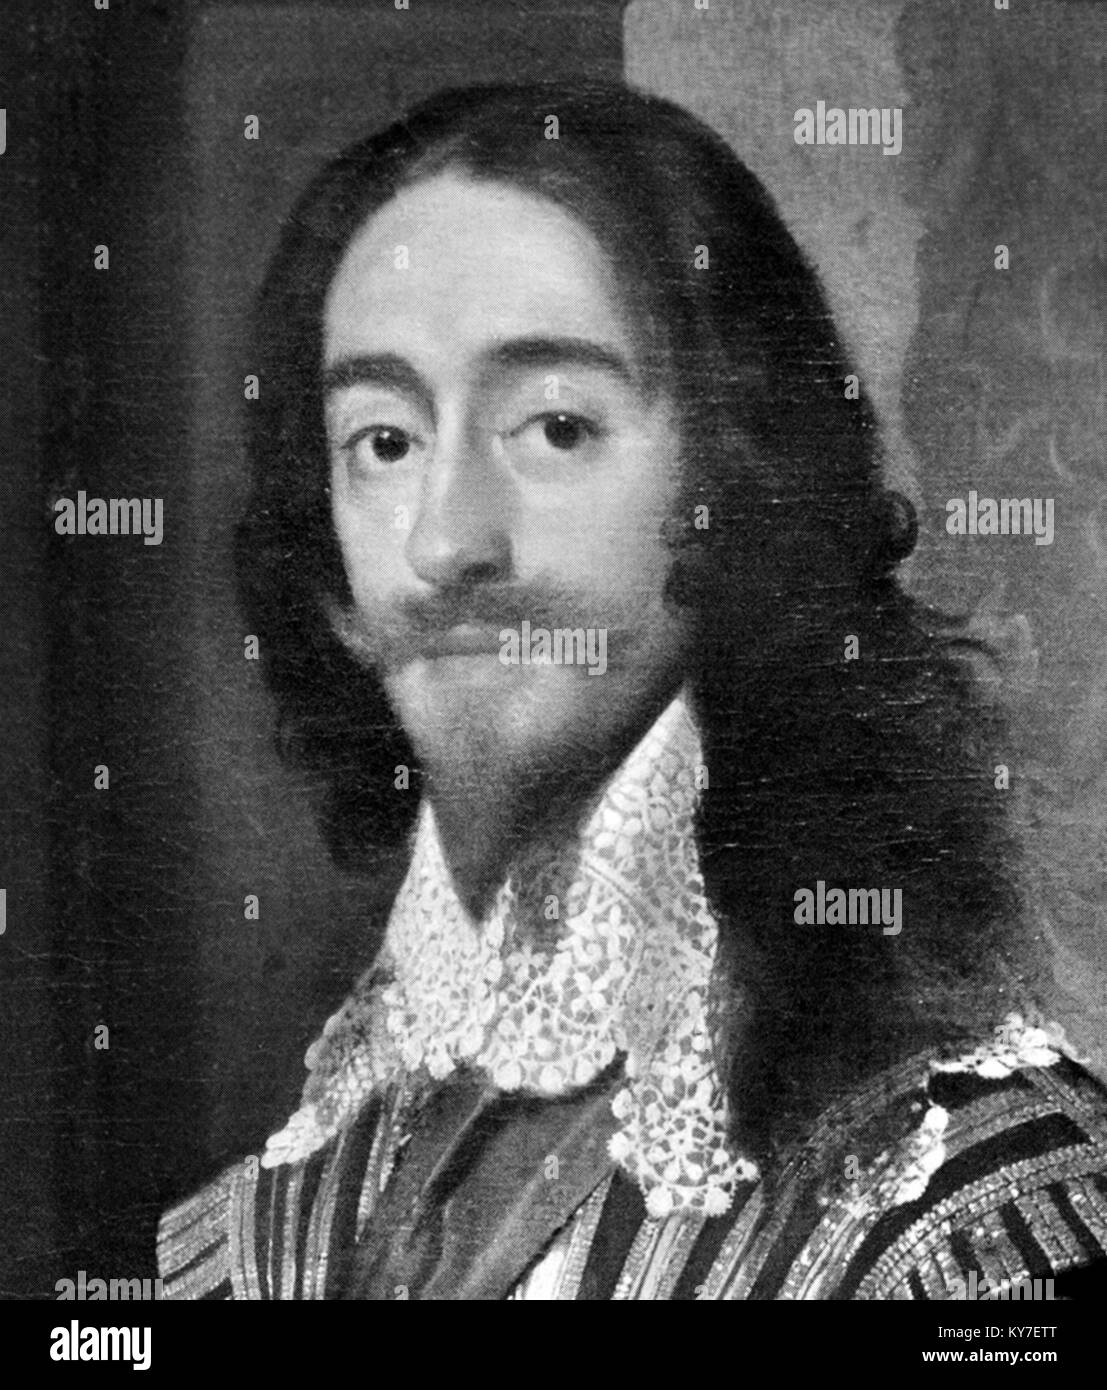 King Charles I of England (1600-1649) - Stock Image